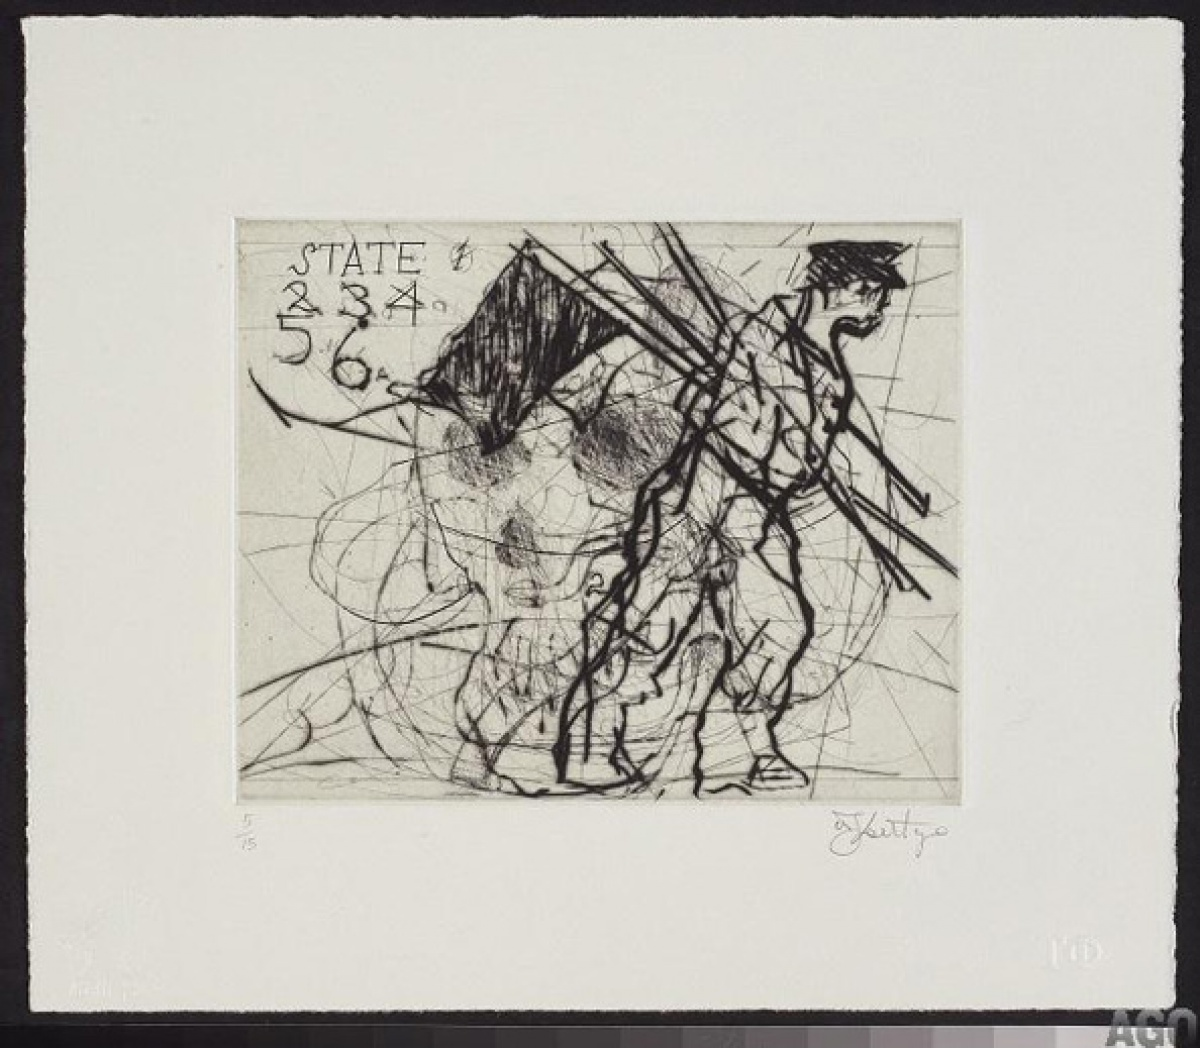 William Kentridge, Copper Notes, State 6 @ 594